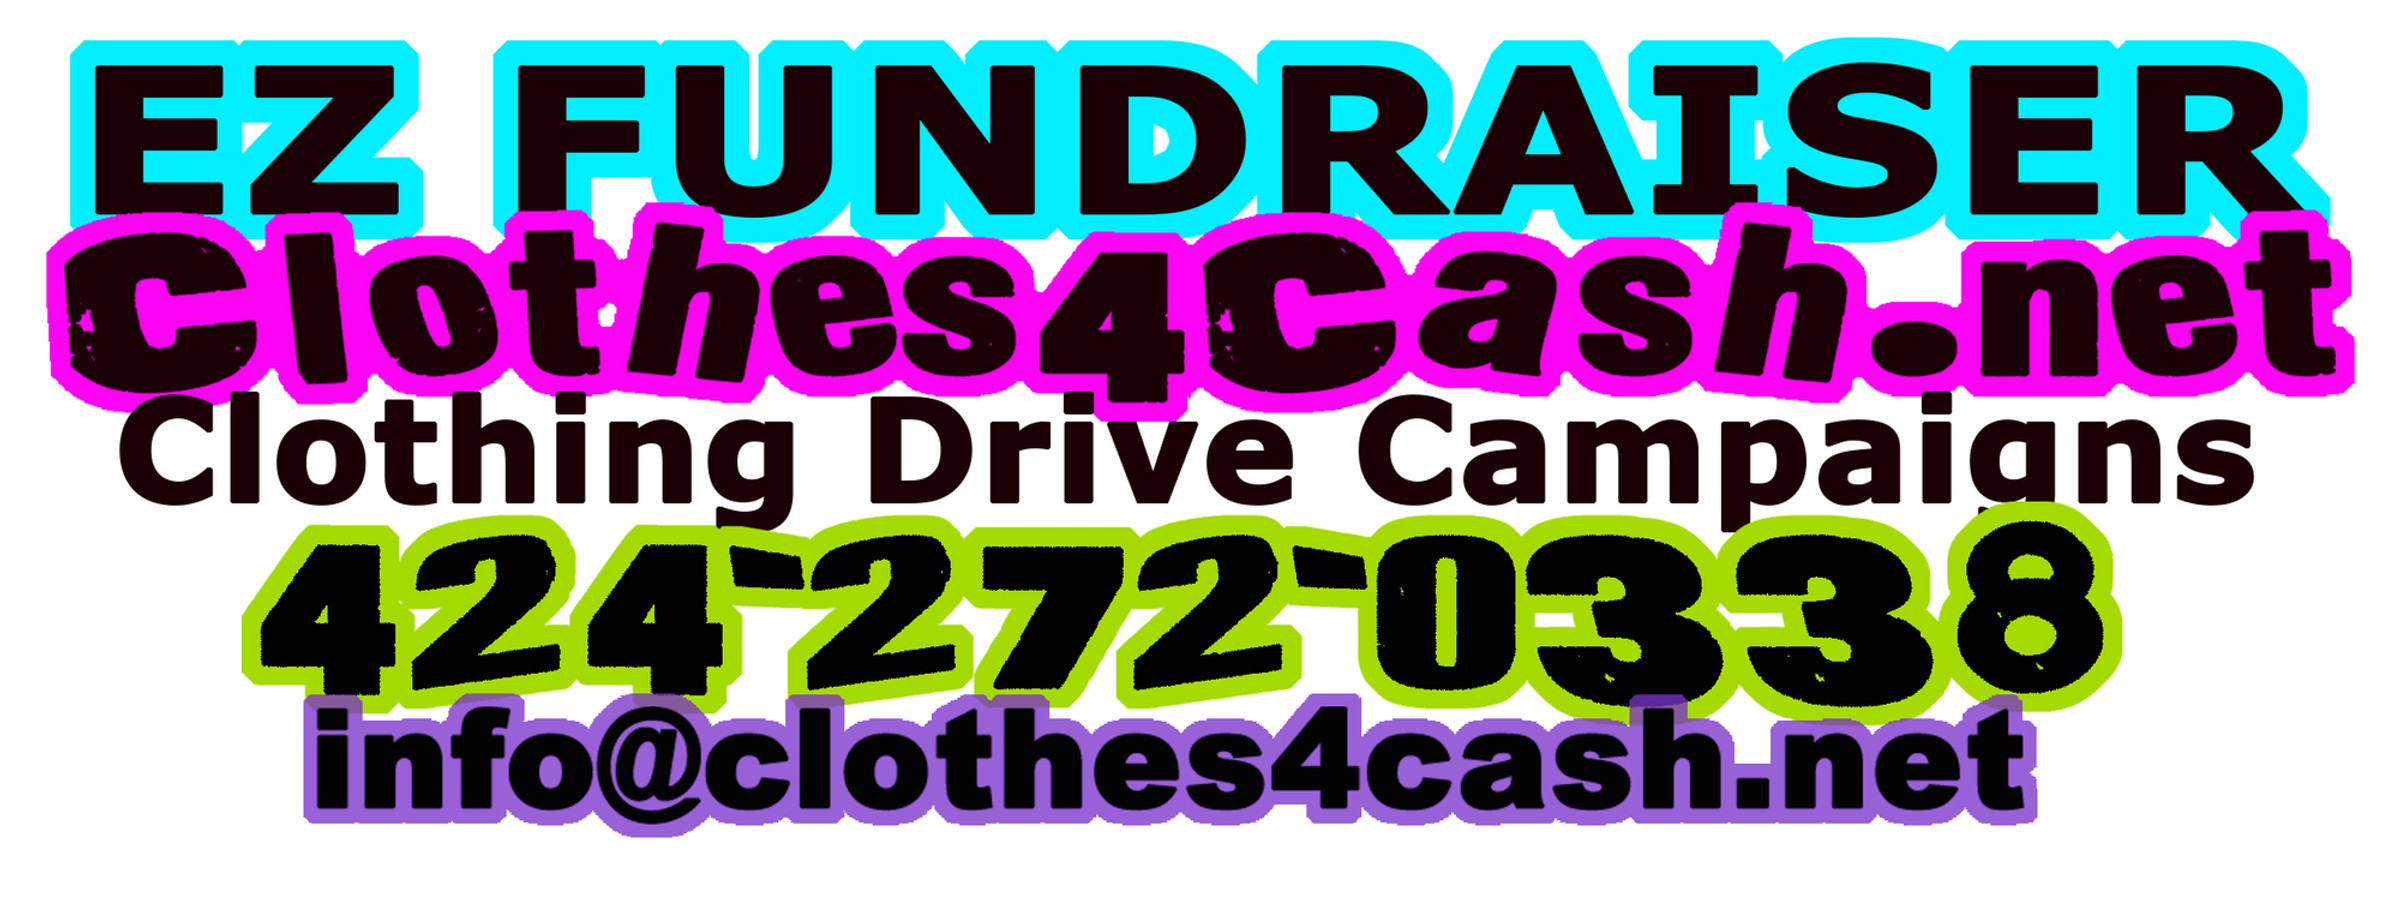 Clothes4Cash - Fundraiser Logo